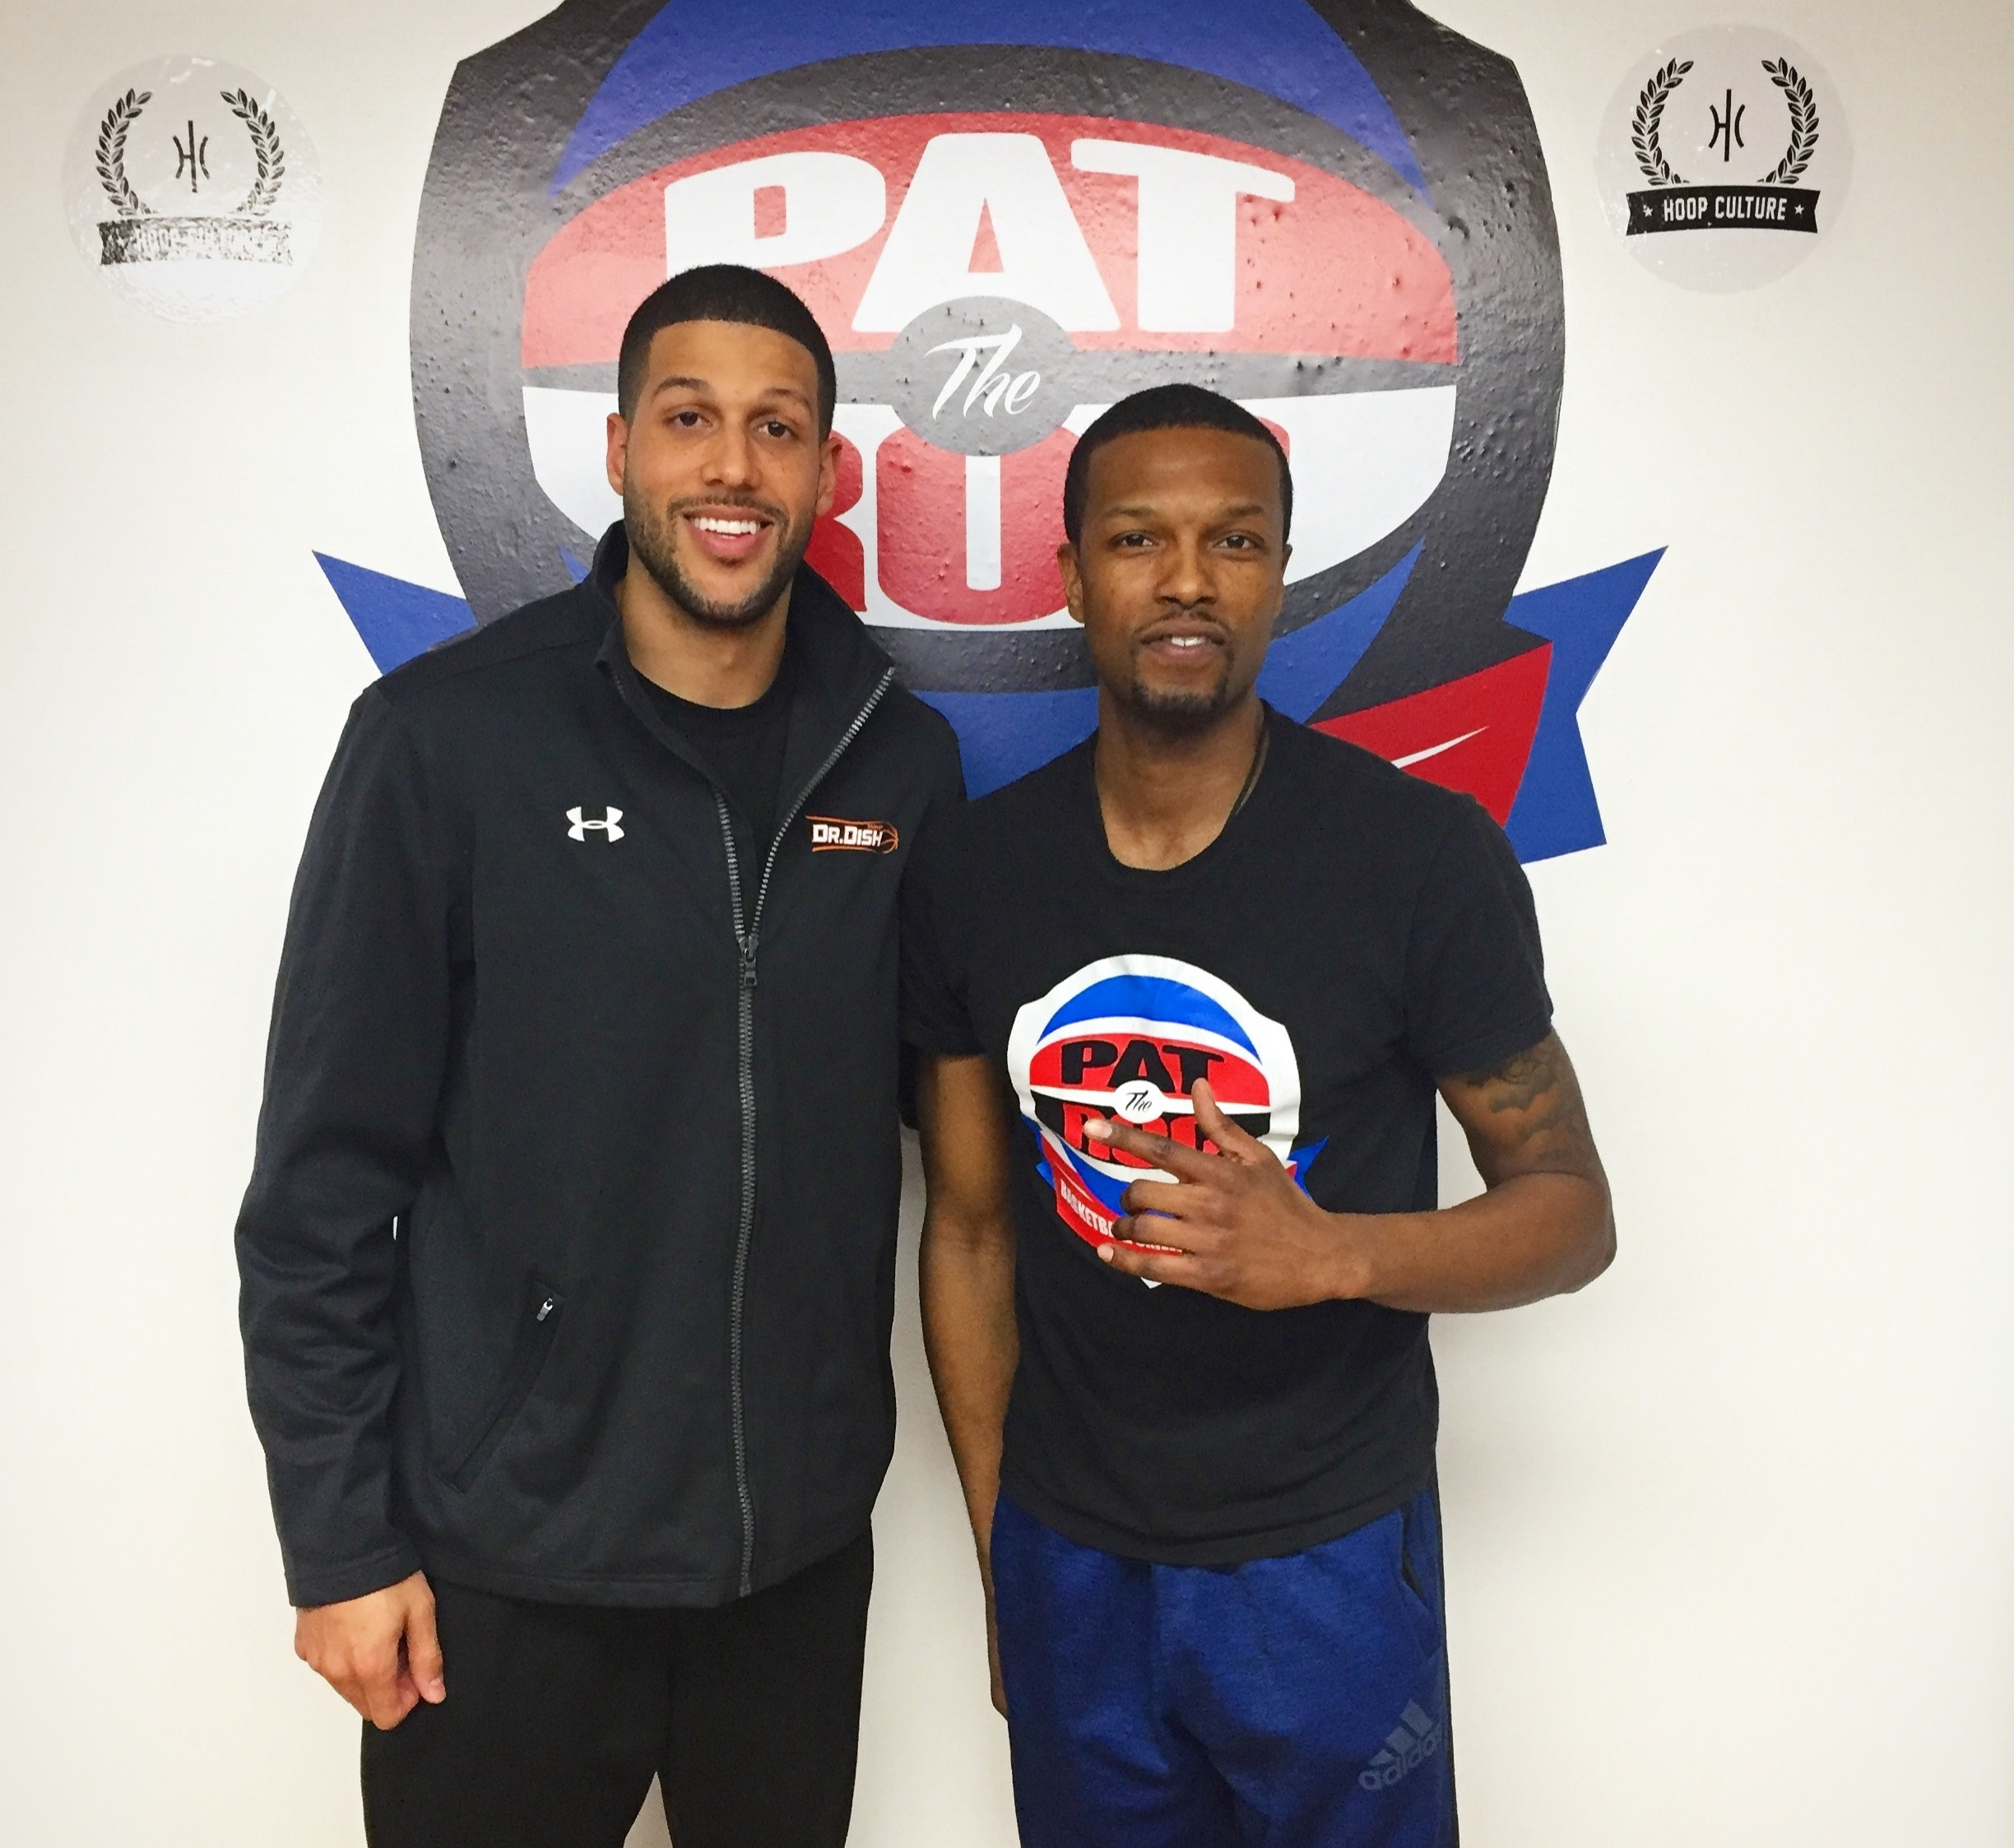 Dr. Dish Basketball visits Pat The Roc Skills Academy